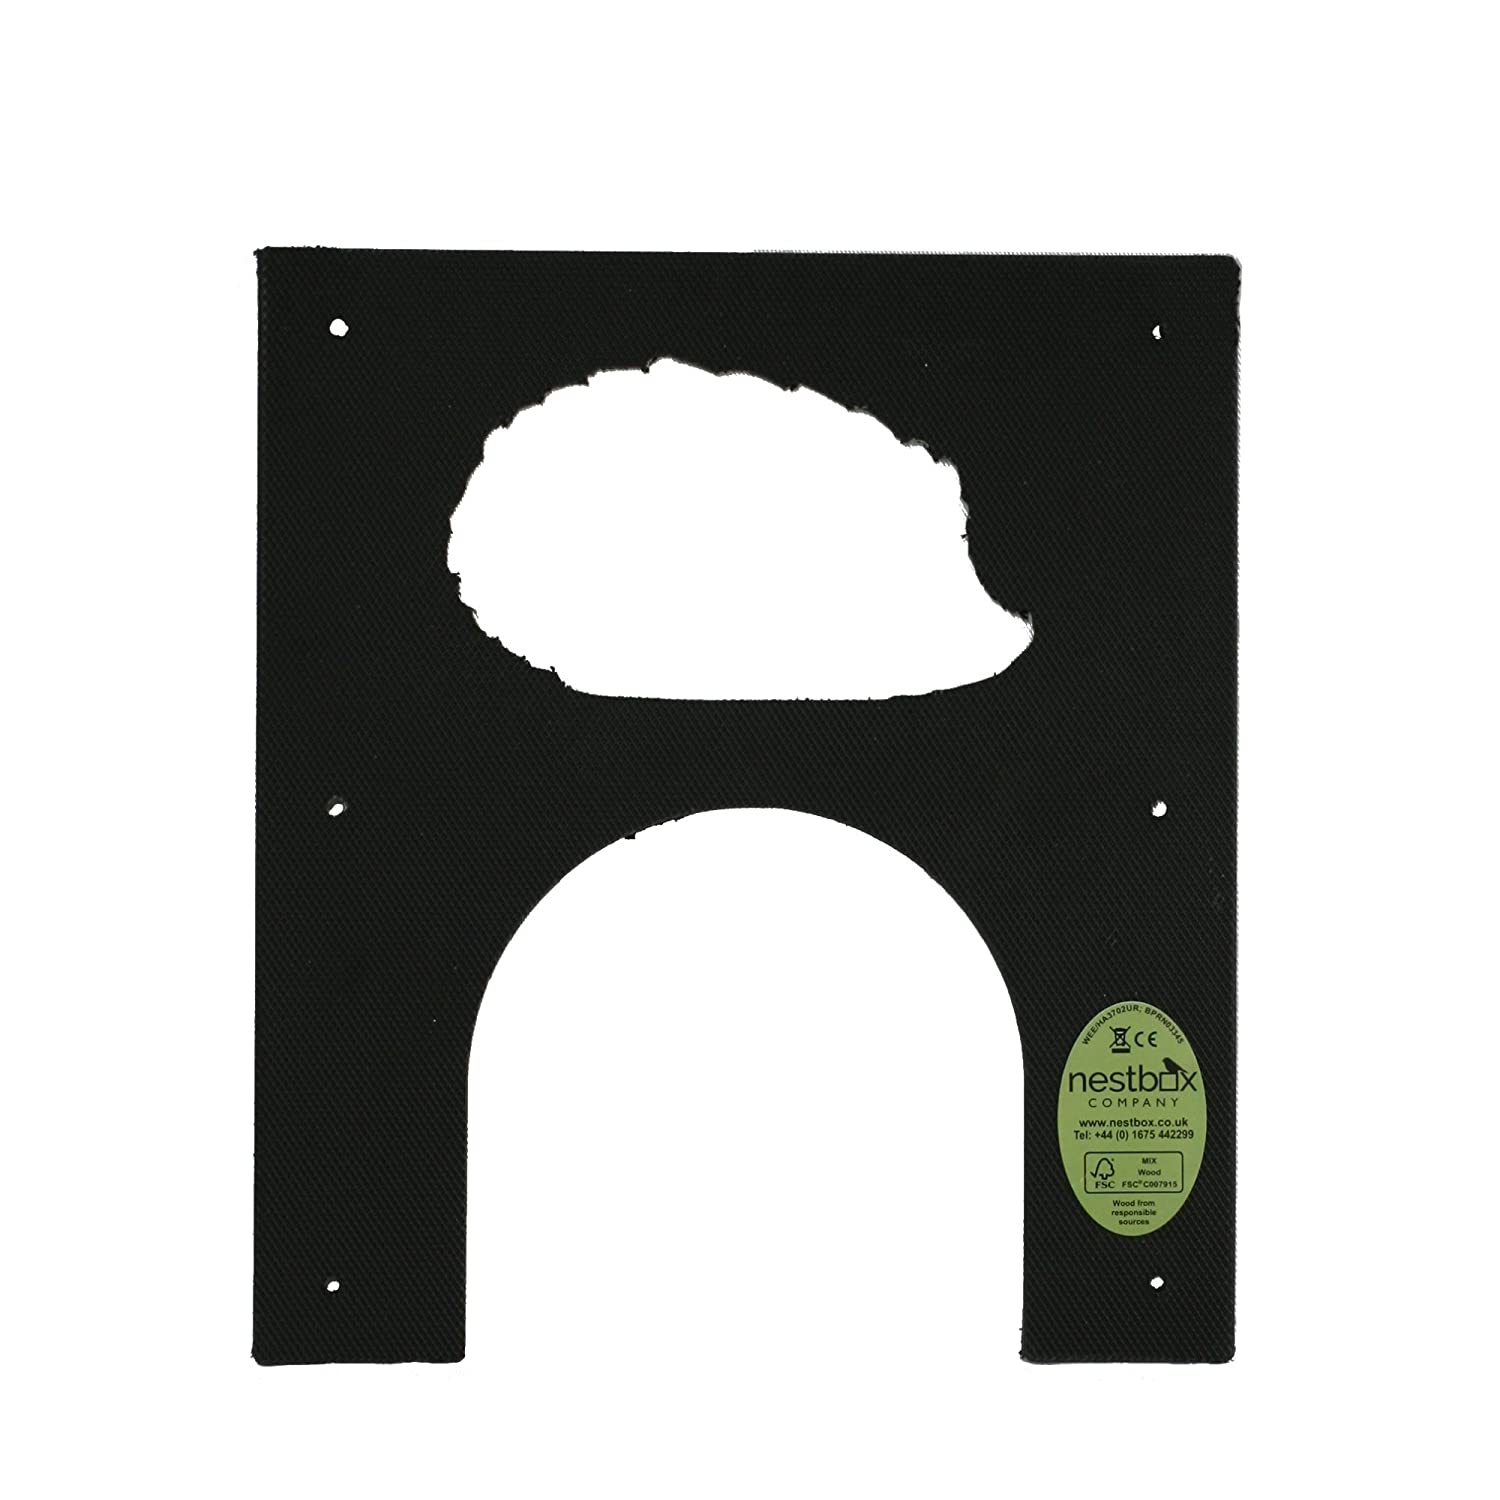 Nestbox Co Eco Hedgehog Hole Protection Plate for Fence or Wall